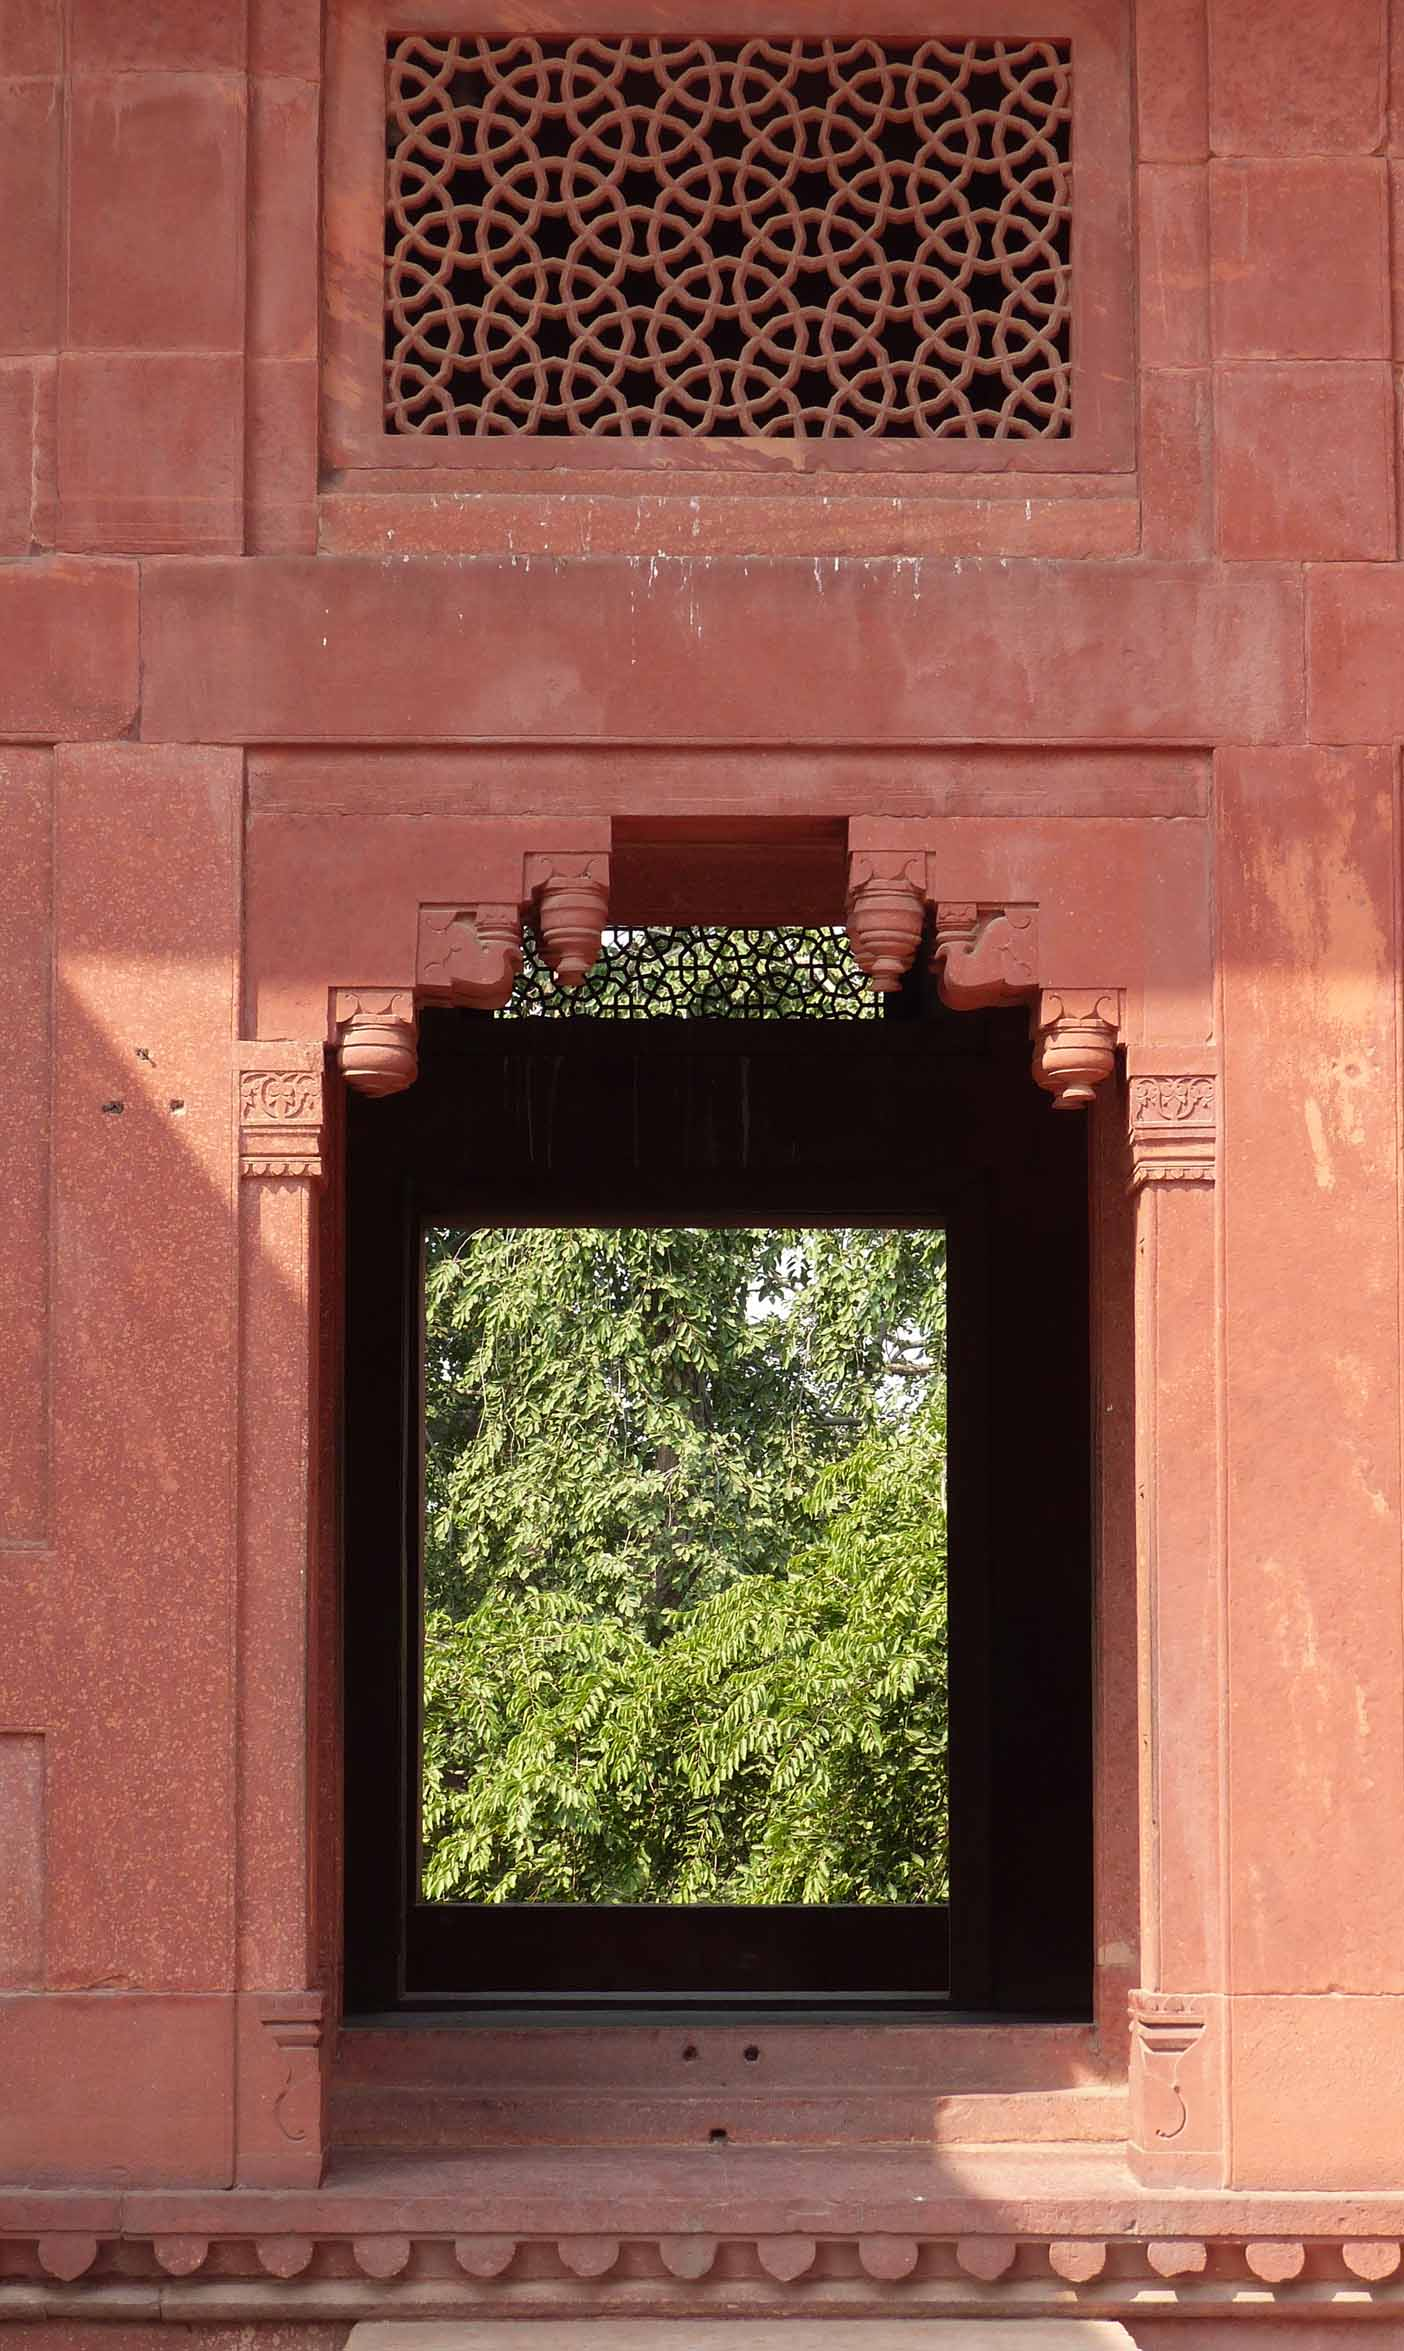 Window and carved panel in red sandstone building